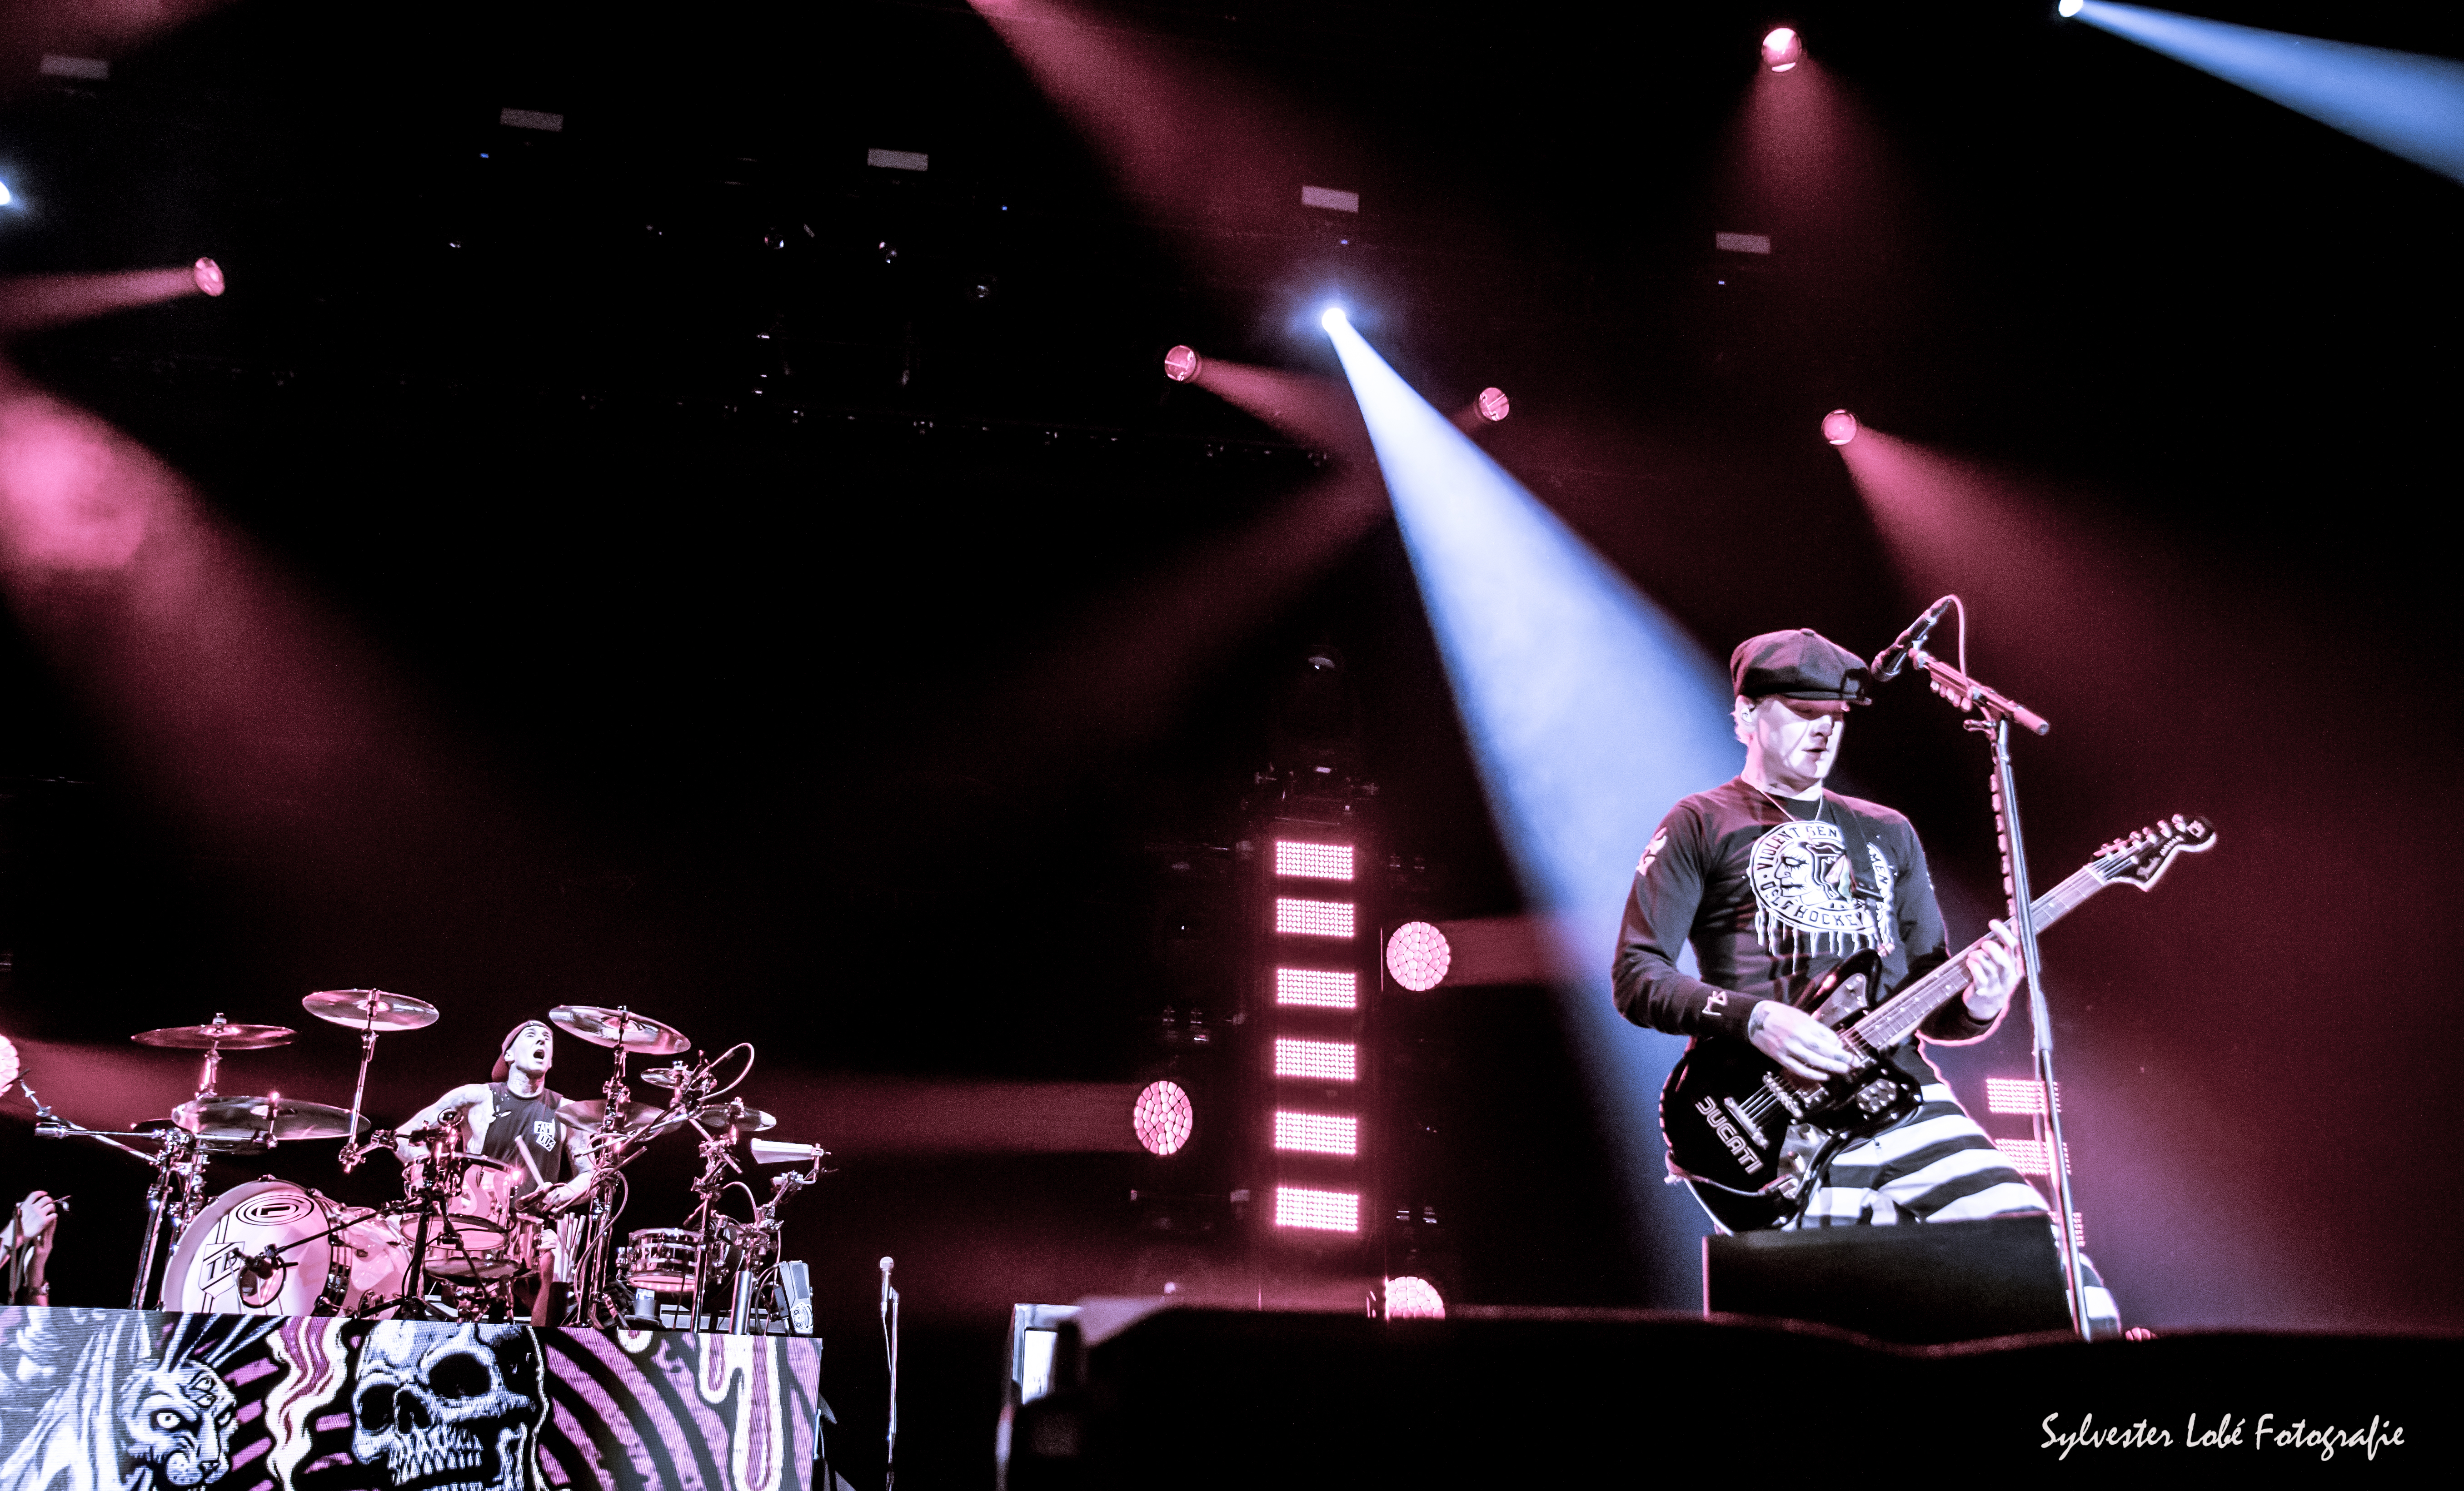 blink-182-at-ahoy-bw-blink182-at-ahoy-rotterdam-20170626-3605-c